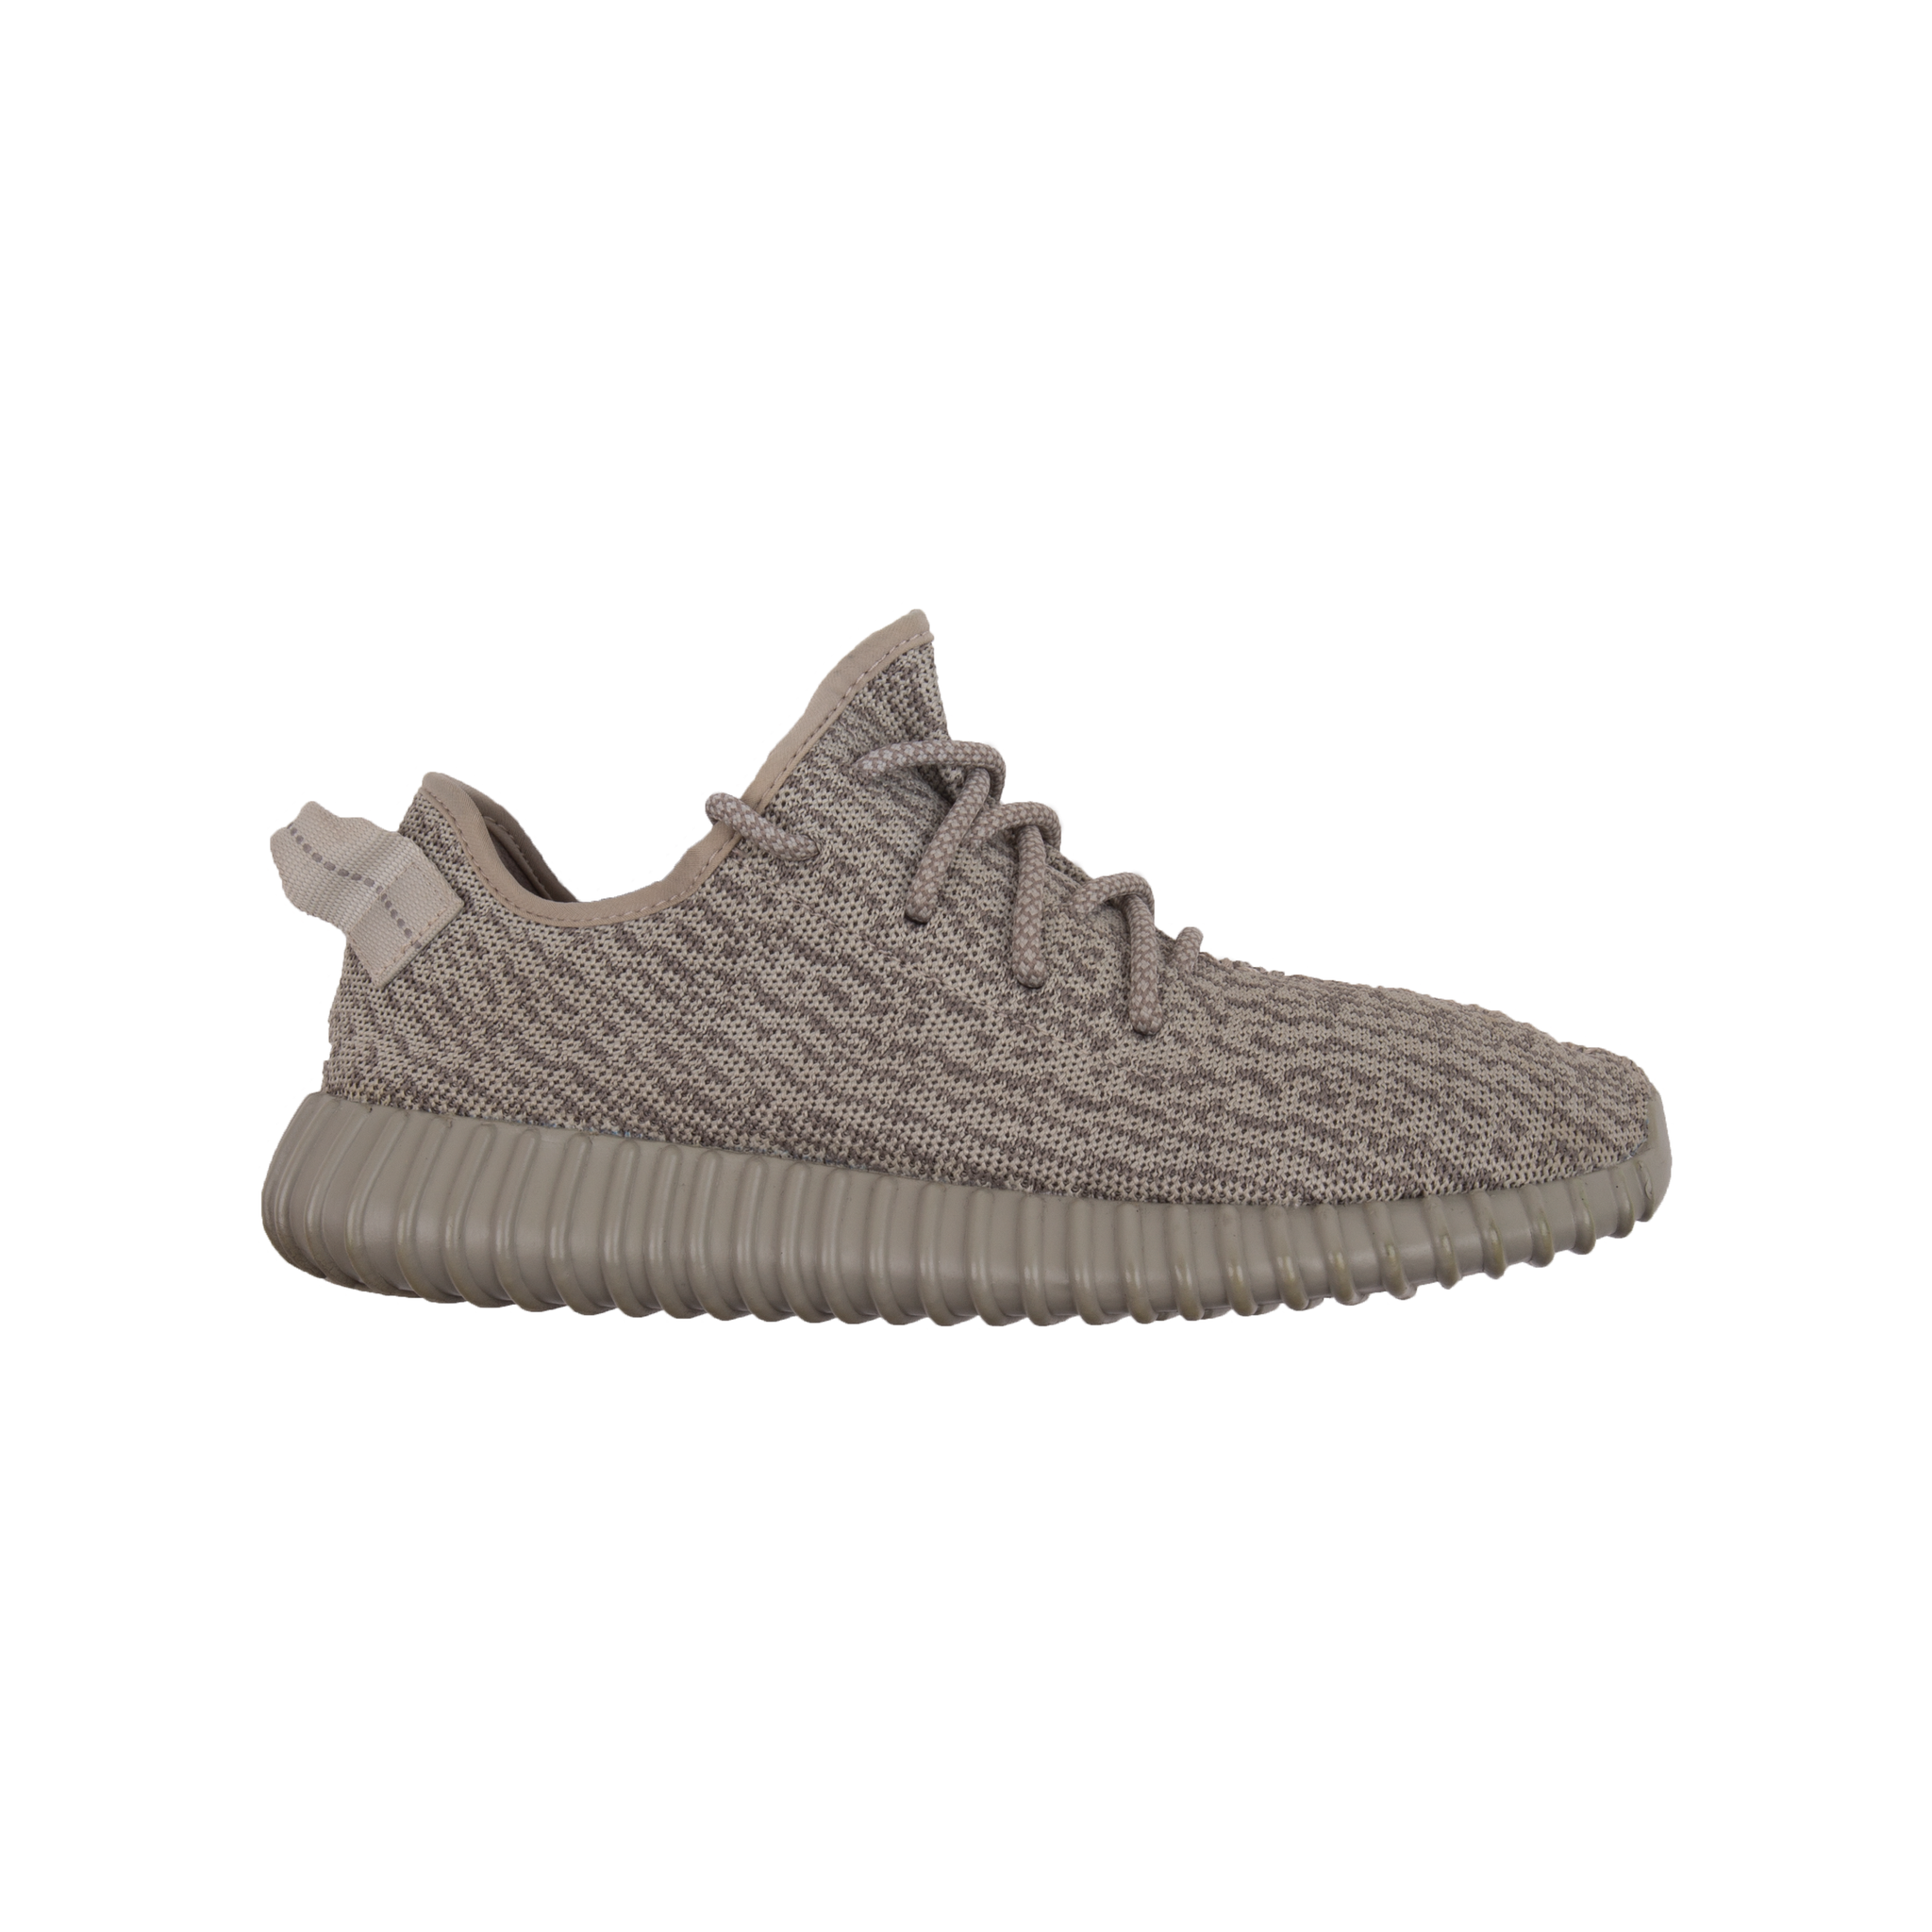 Adidas Moon Rock Yeezy 350 Boost